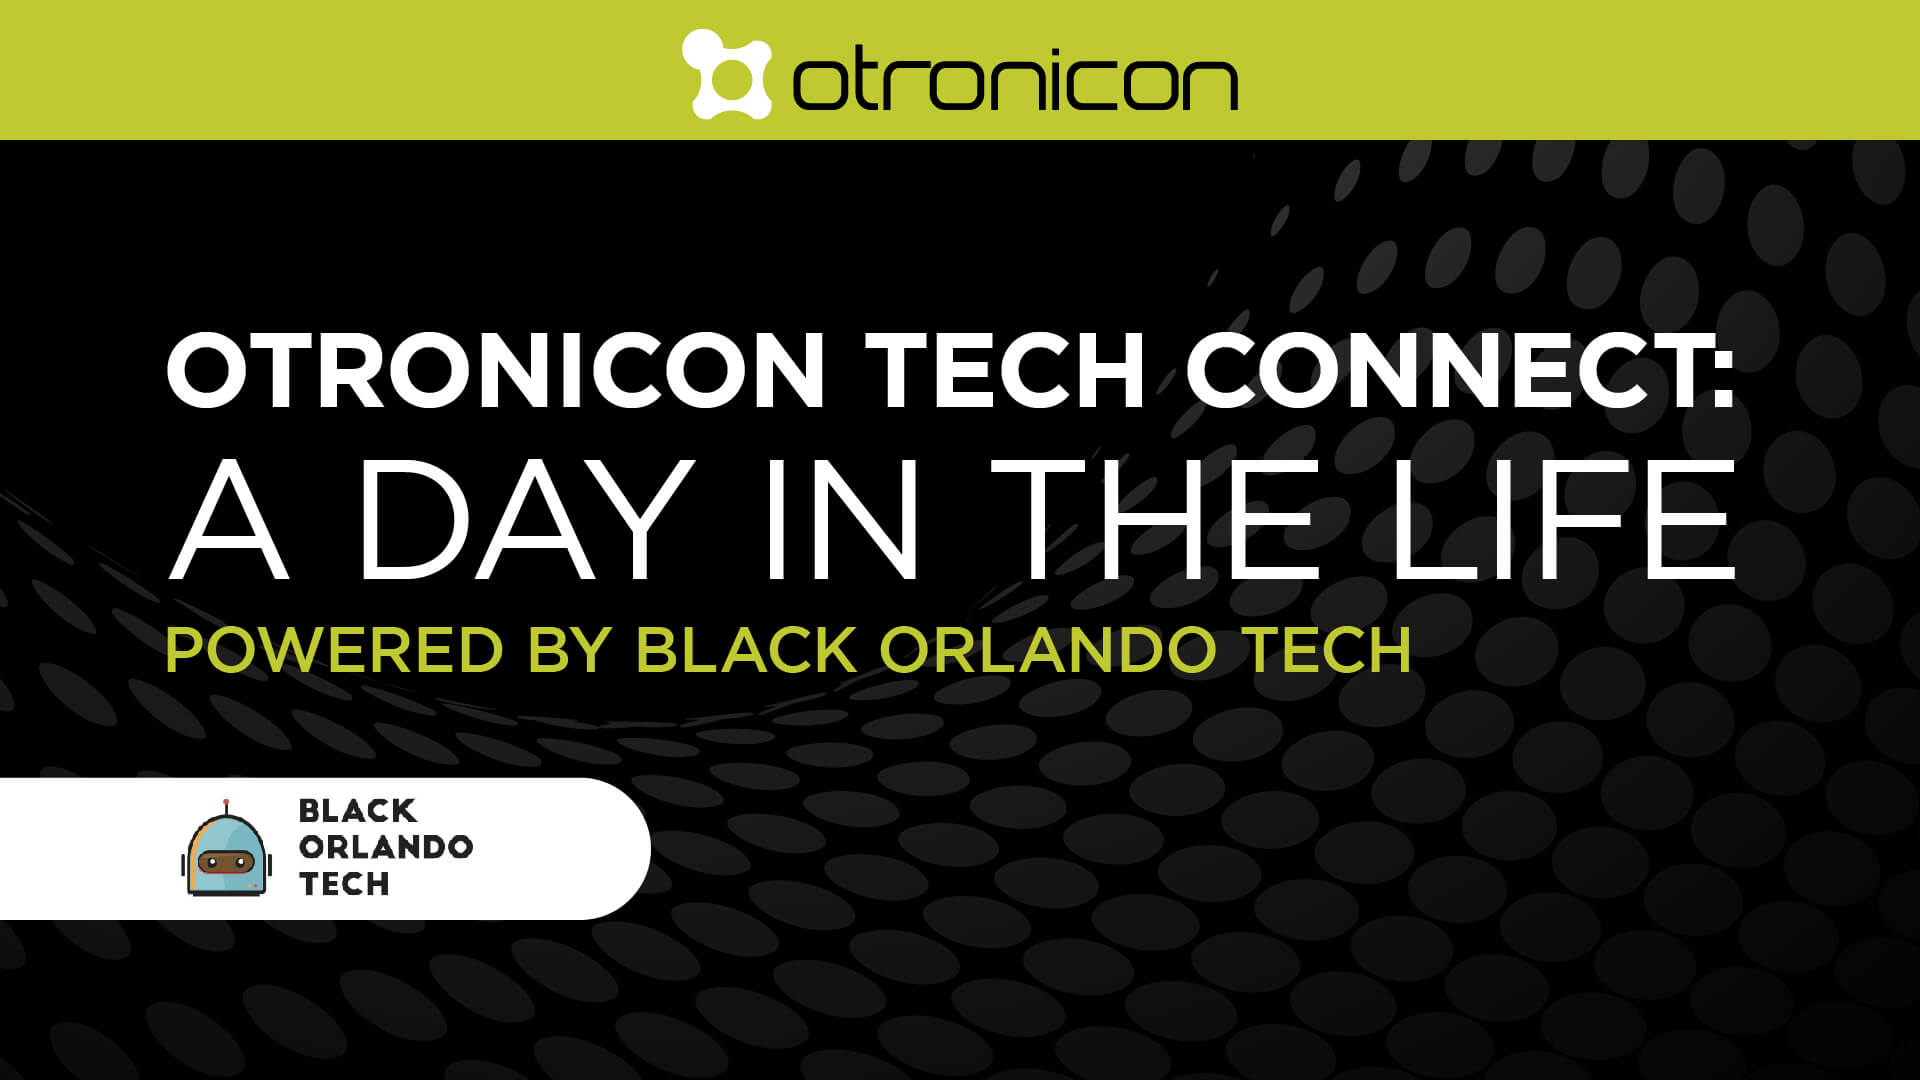 Tech Connect: A Day in the Life Powered by Black Orlando Tech